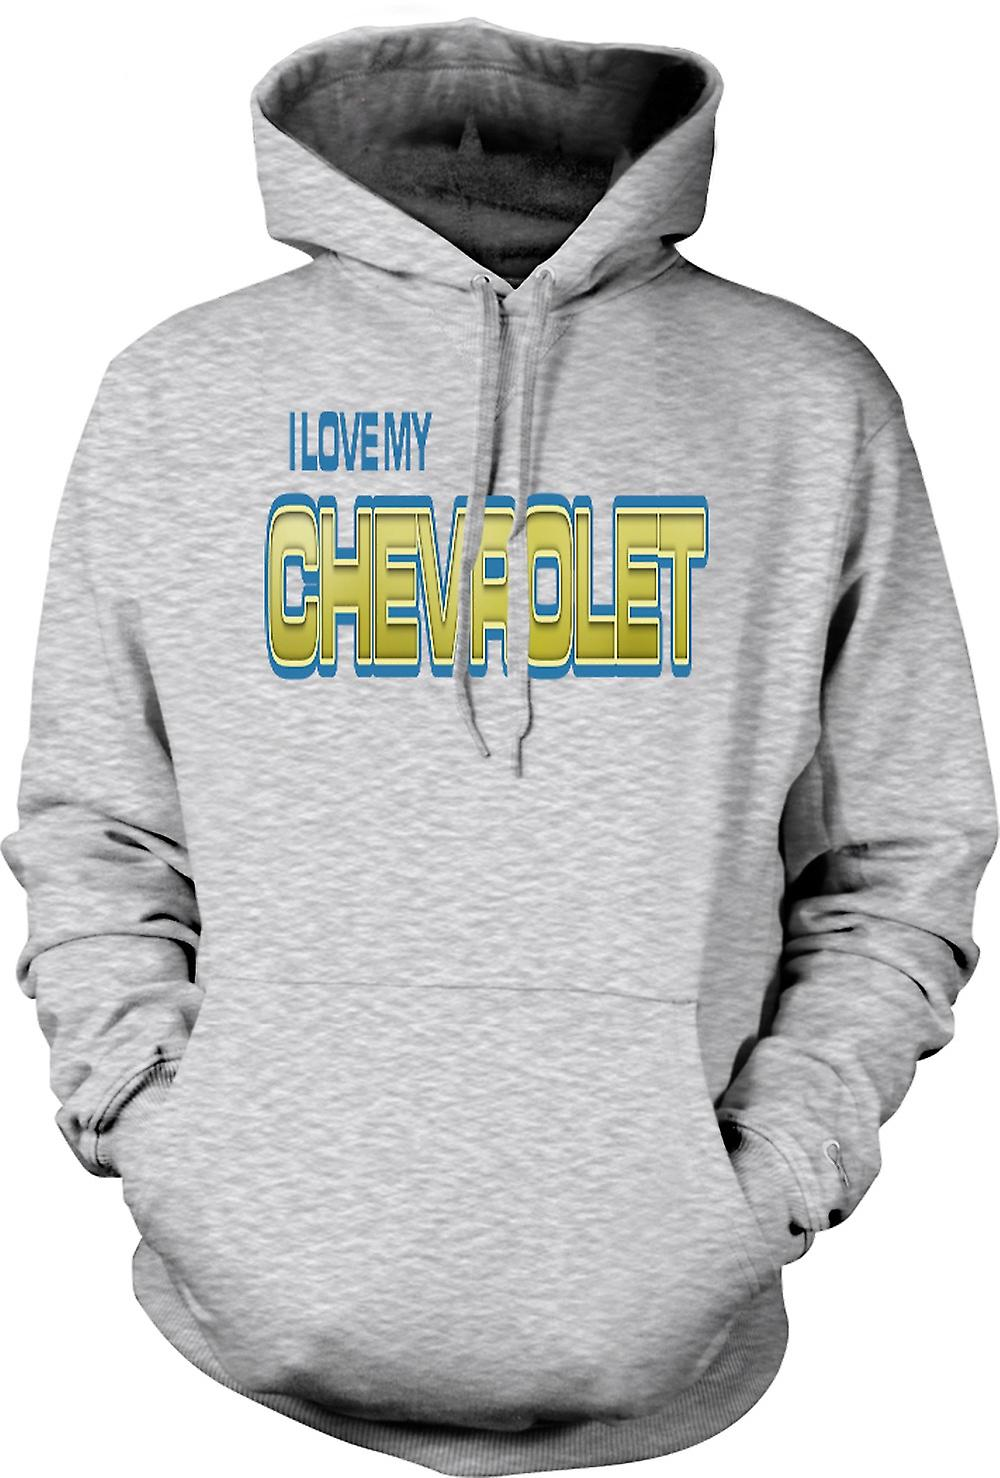 Mens Hoodie - I Love My Chevrolet - Car Enthusiast